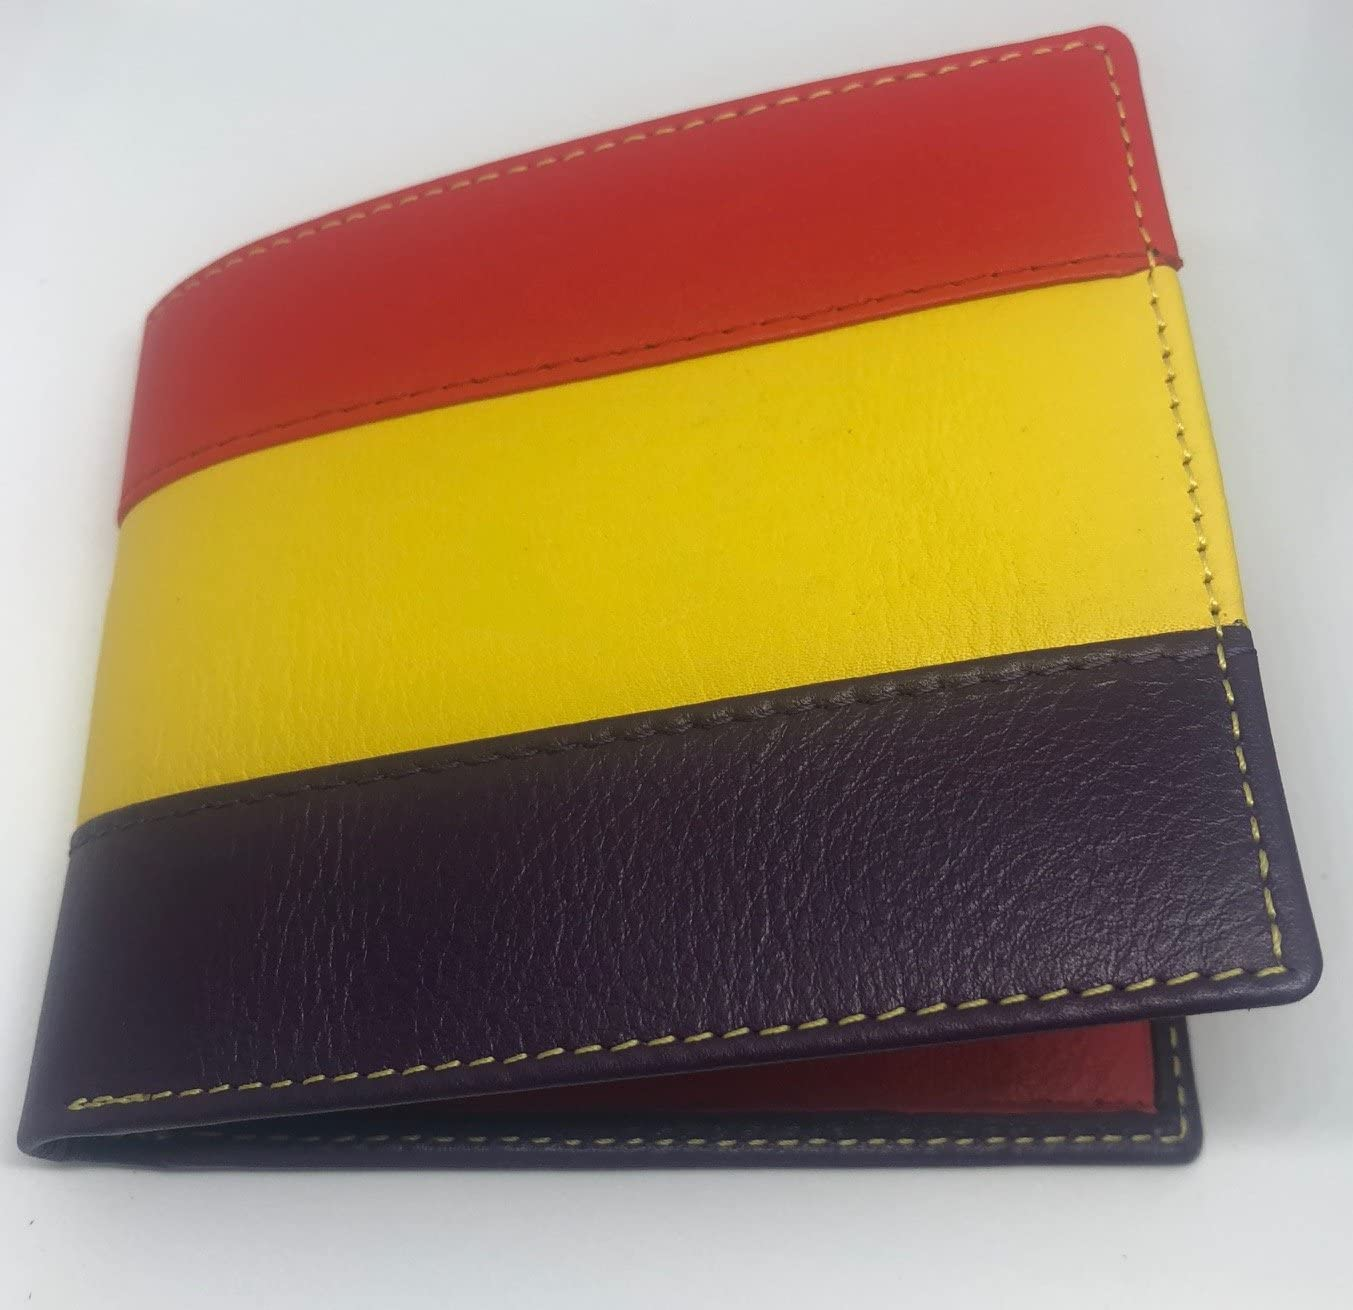 Cartera Americano Bandera Republicana Piel UBRIQUE: Amazon.es ...